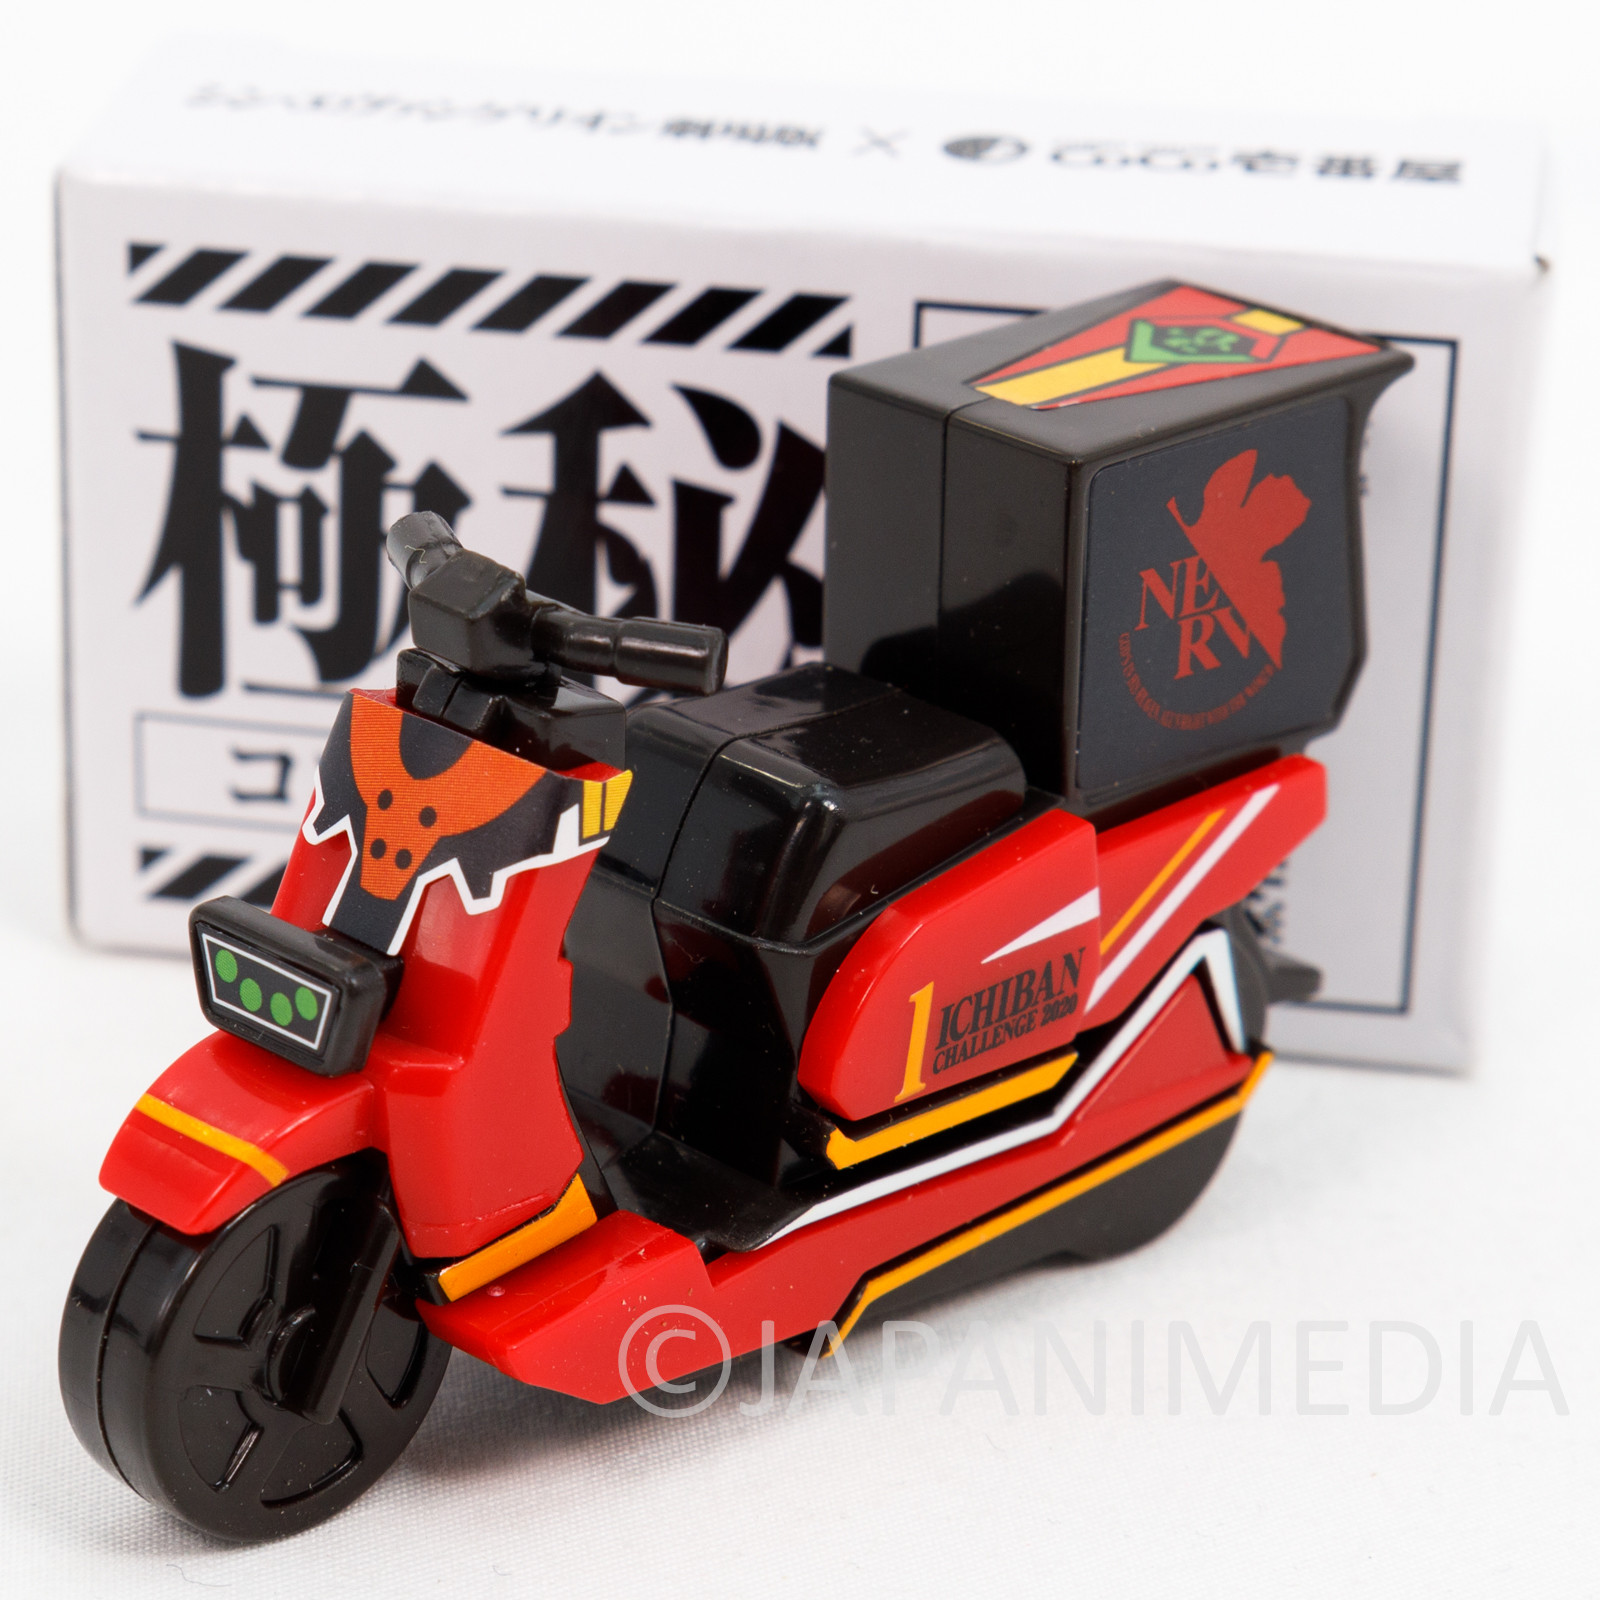 Evangelion x Kokoichi Delivery Bike Figure EVA-02 JAPAN ANIME